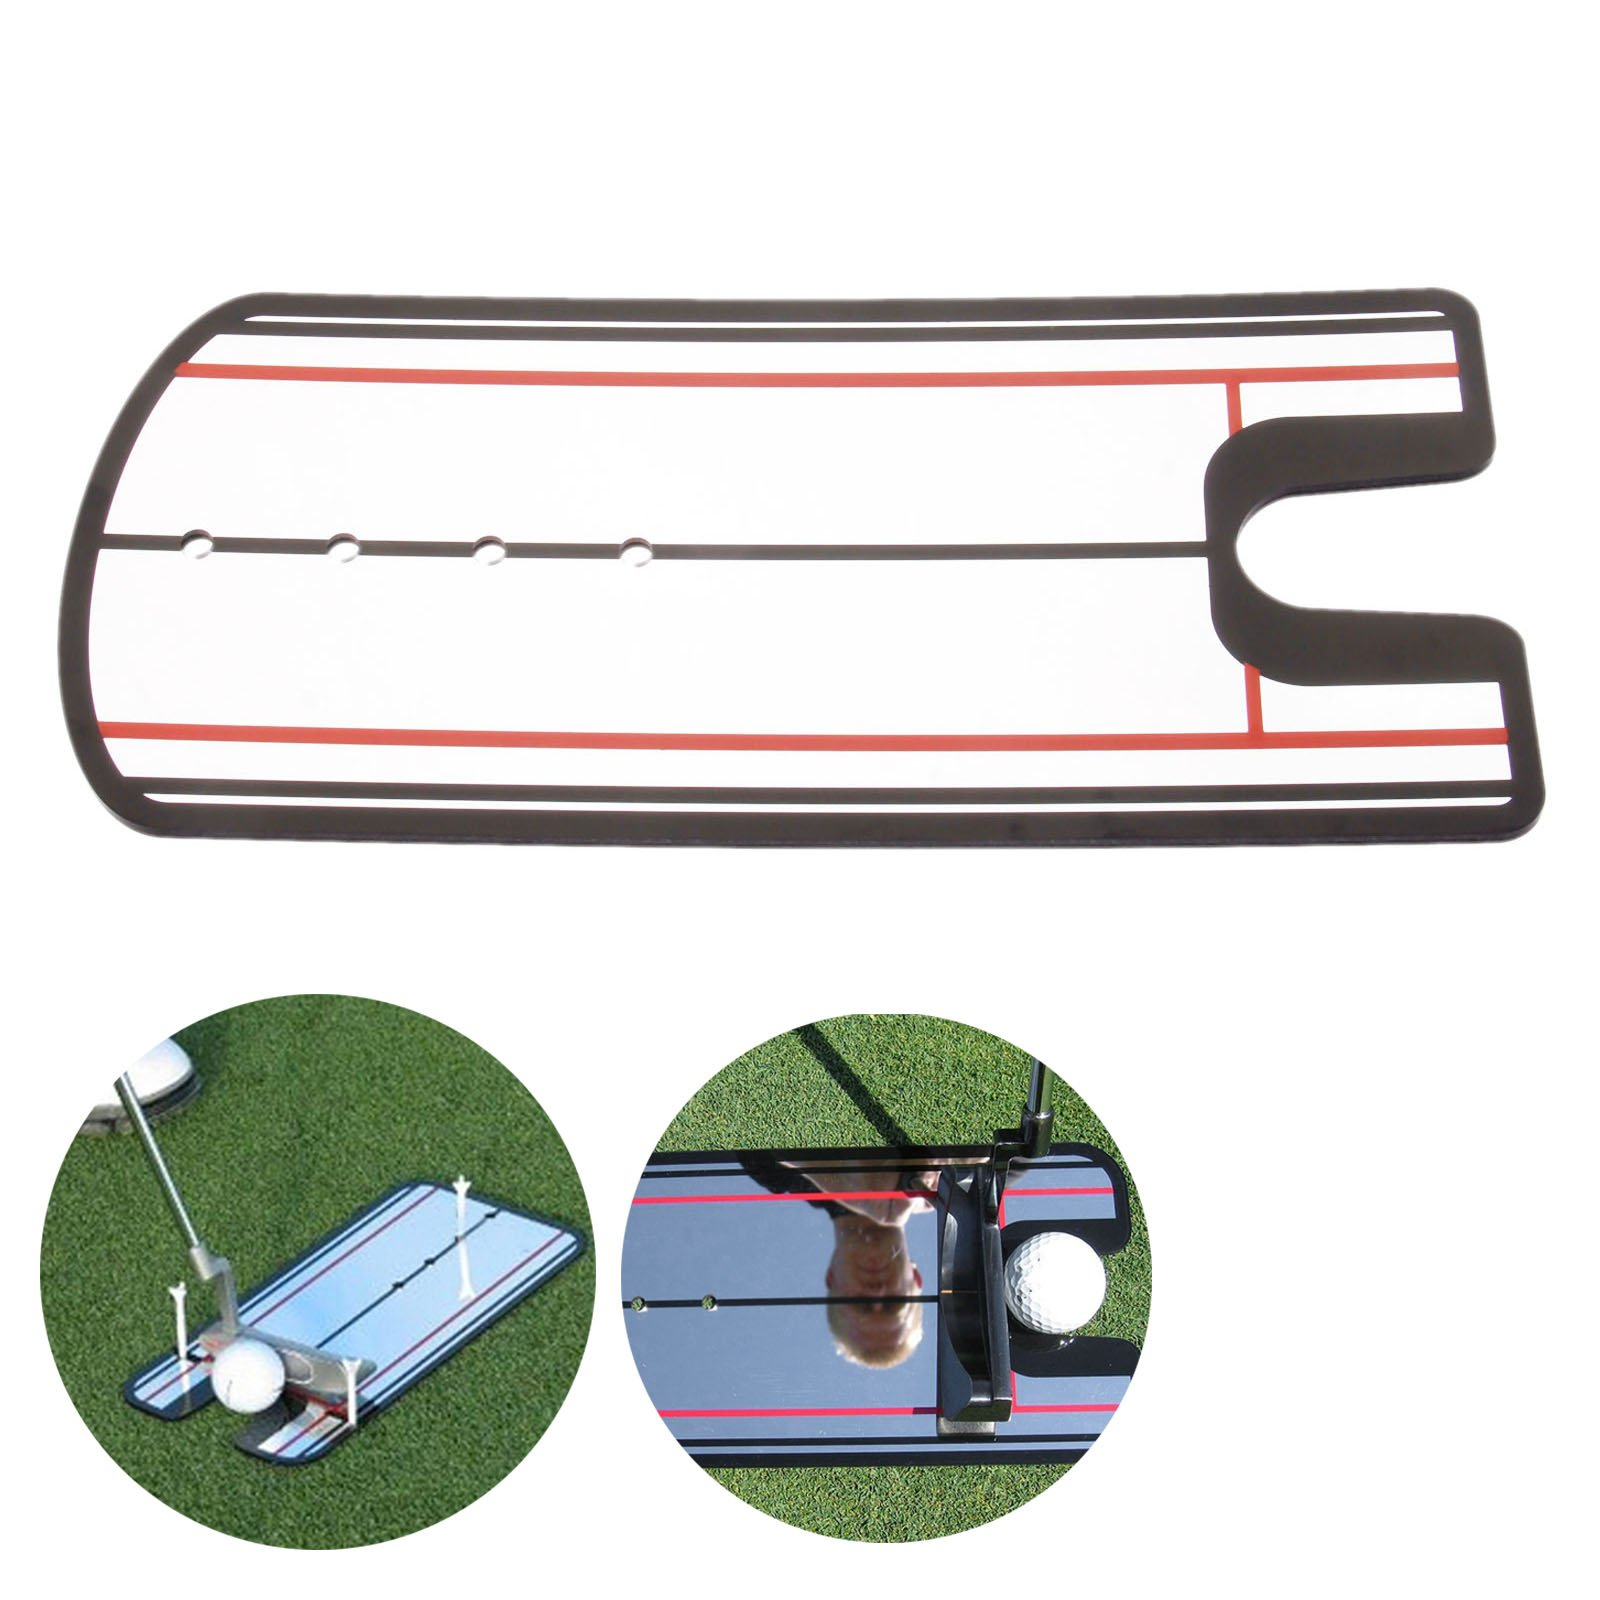 Golf Swing Straight Practice Golf Putting Mirror Alignment Training Aid Swing by MUXSAM (Image #5)